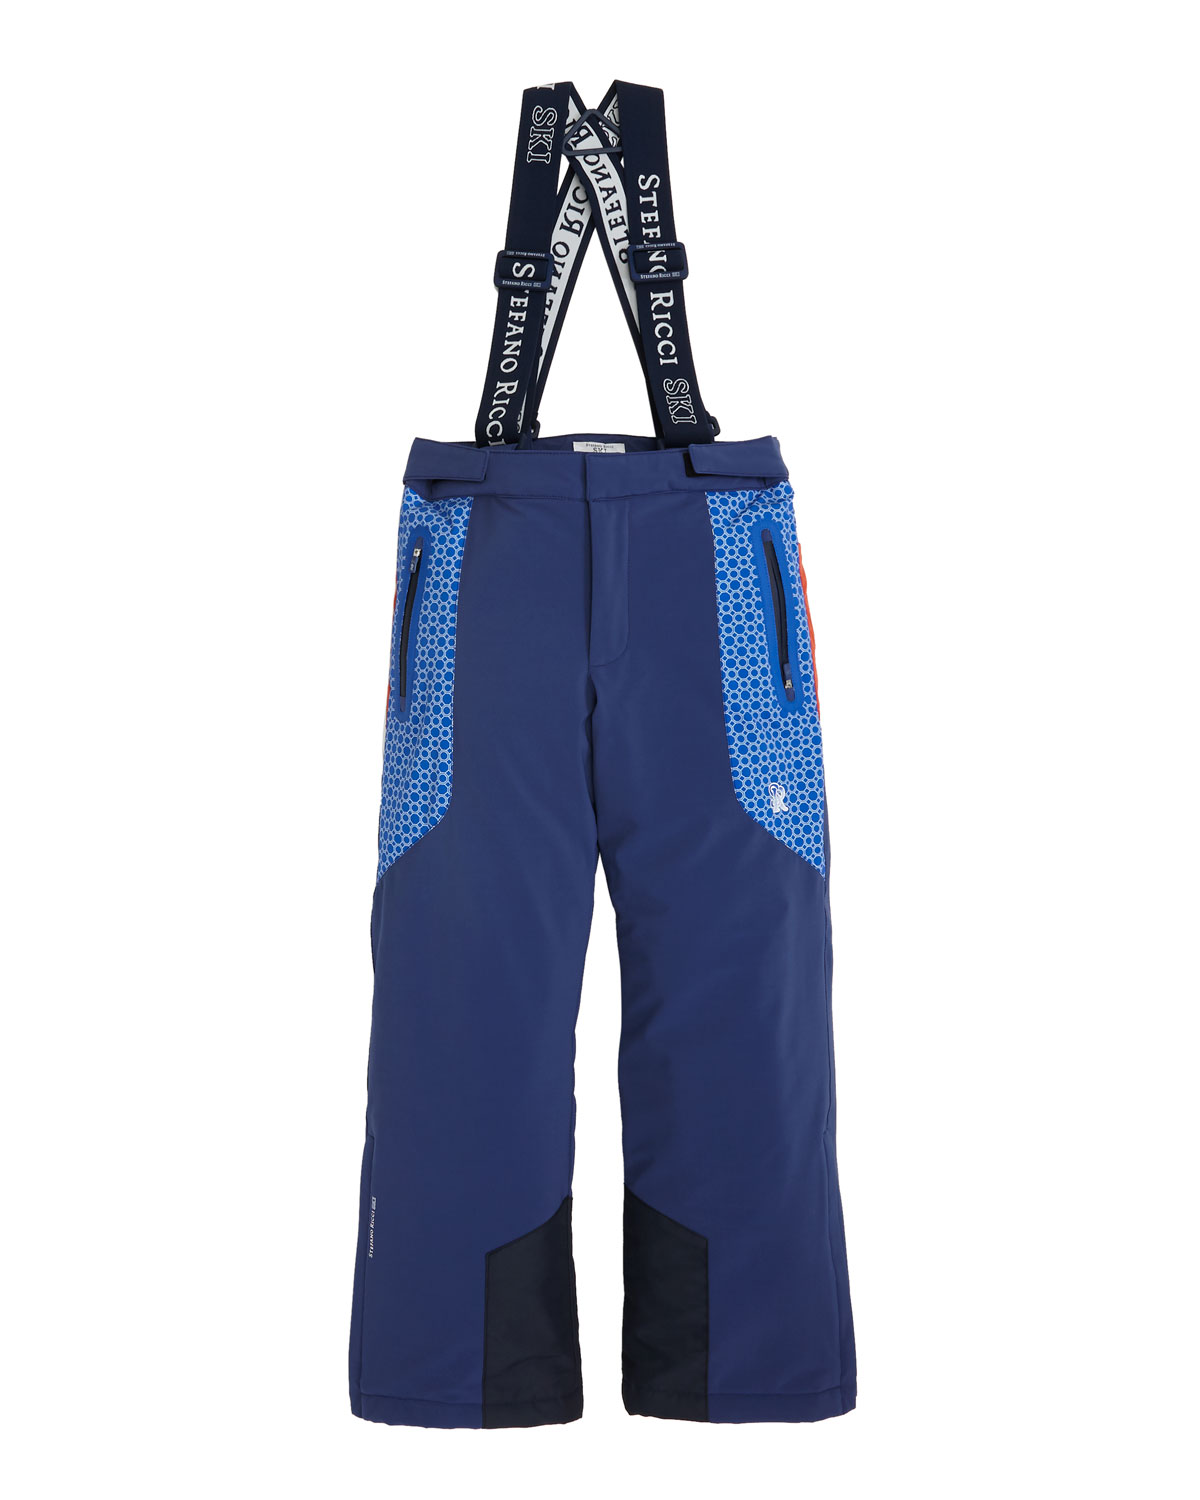 Stefano Ricci Pants BOYS' SKI PANTS WITH SUSPENDERS, SIZES 10-14